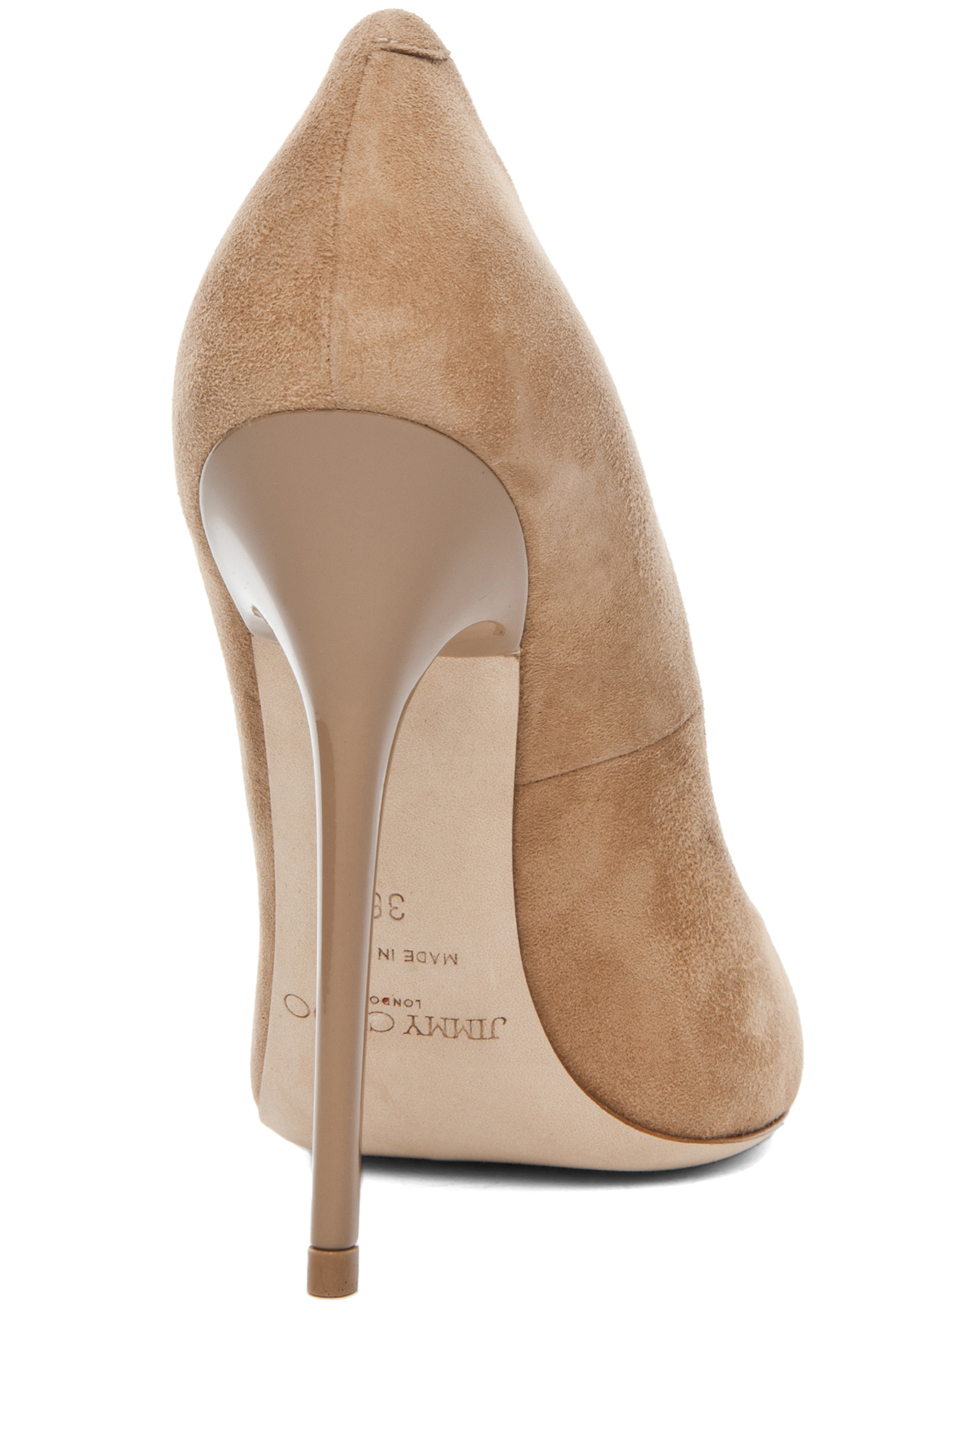 Jimmy Choo|Anouk Suede Pumps in Nude